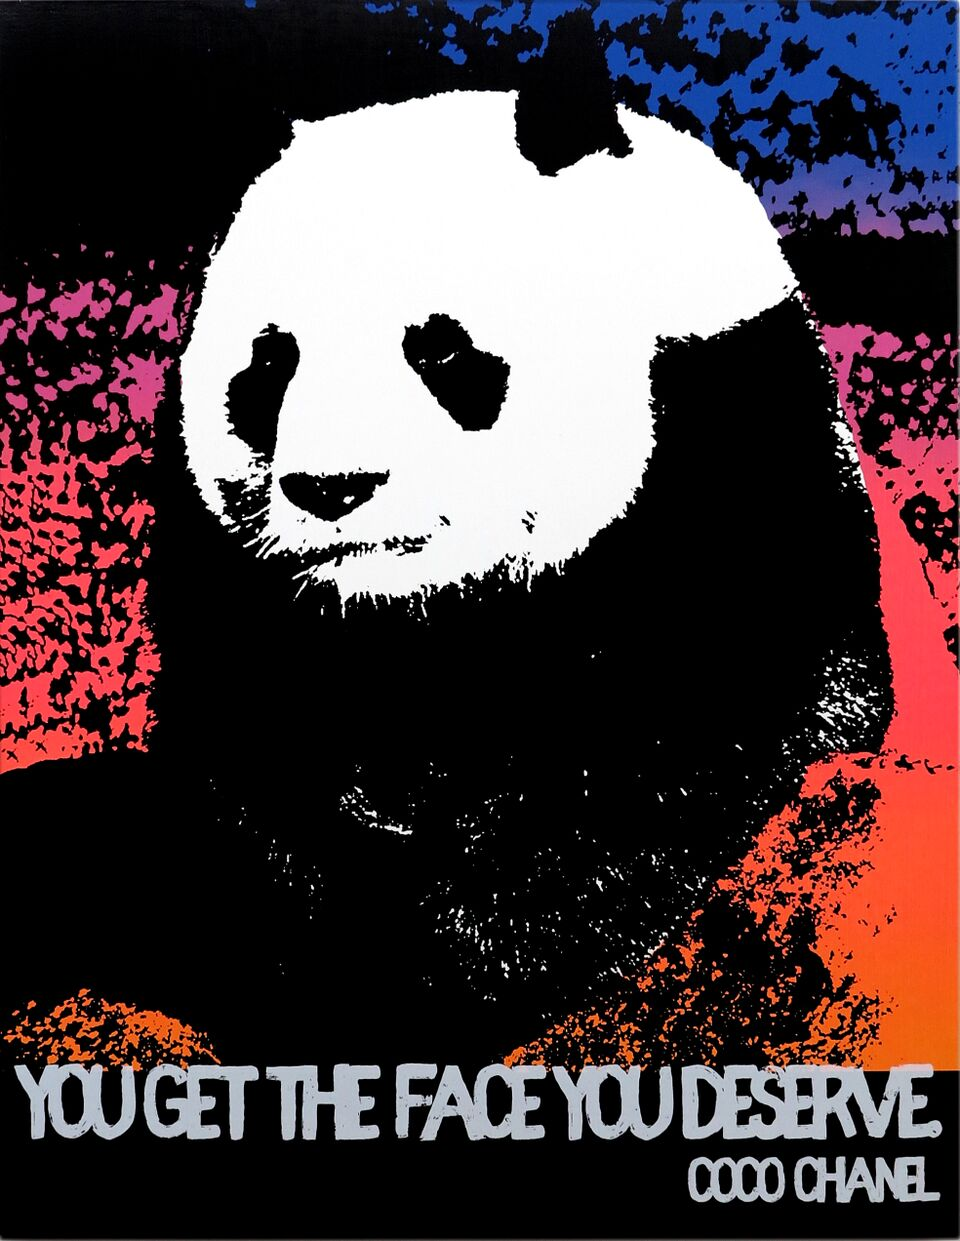 Motivational Panda (Coco Chanel)